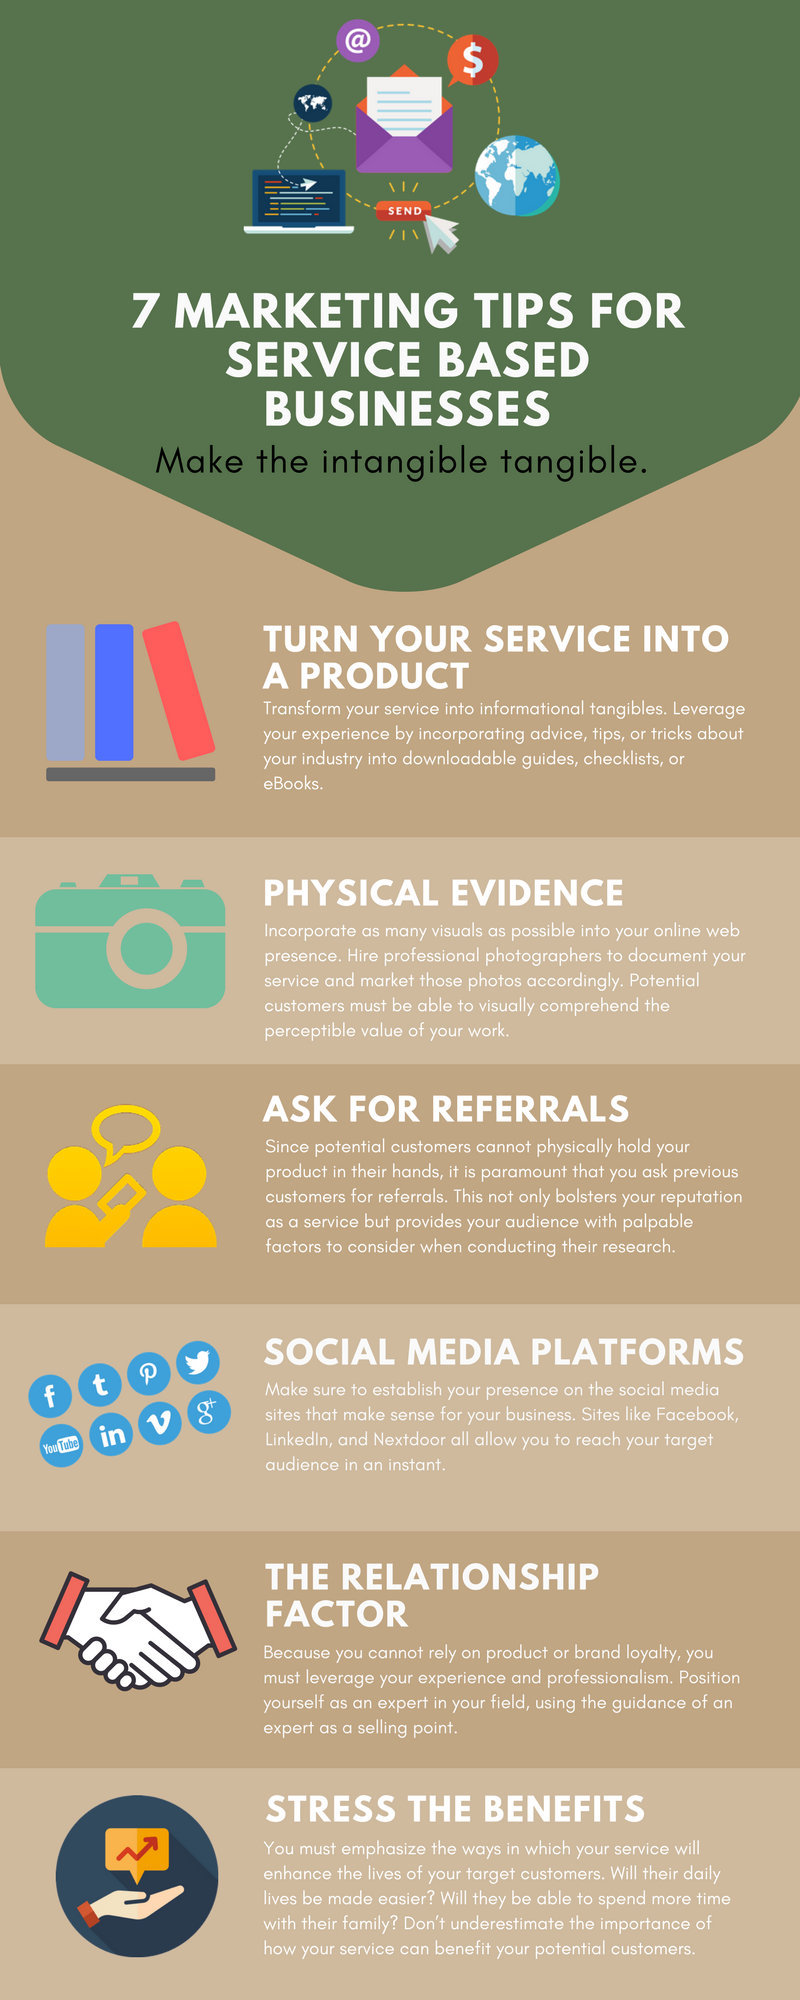 Service Business Marketing Tips-1.png